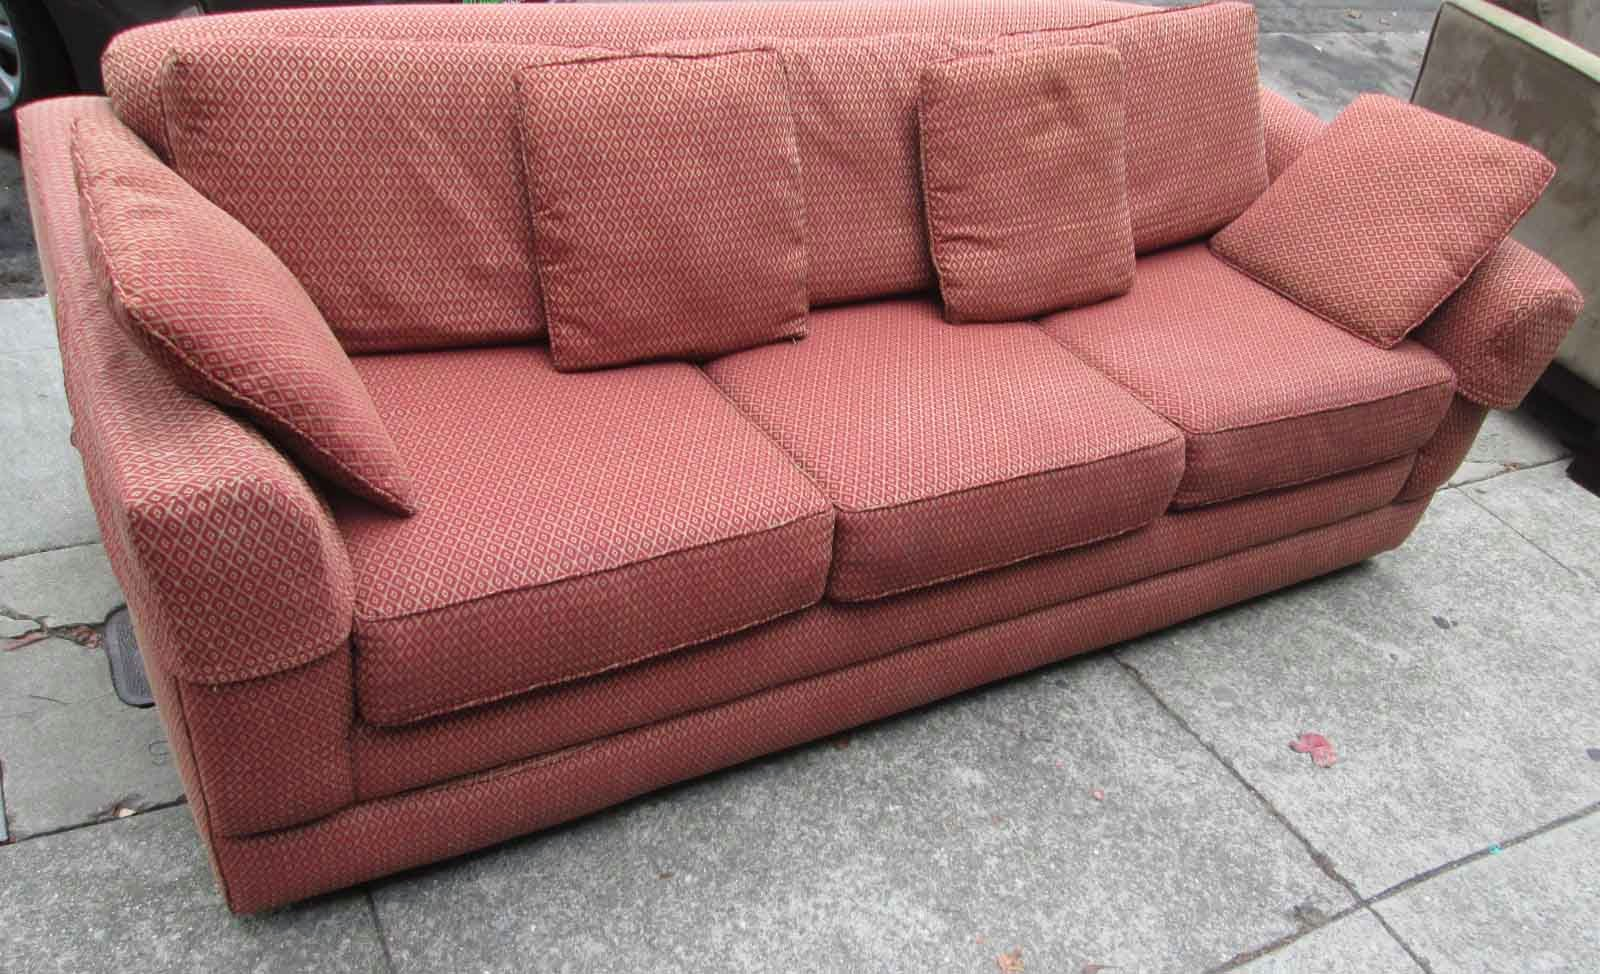 Cranberry Sofa Belfasted Leather Sofa Sleeper Sectional